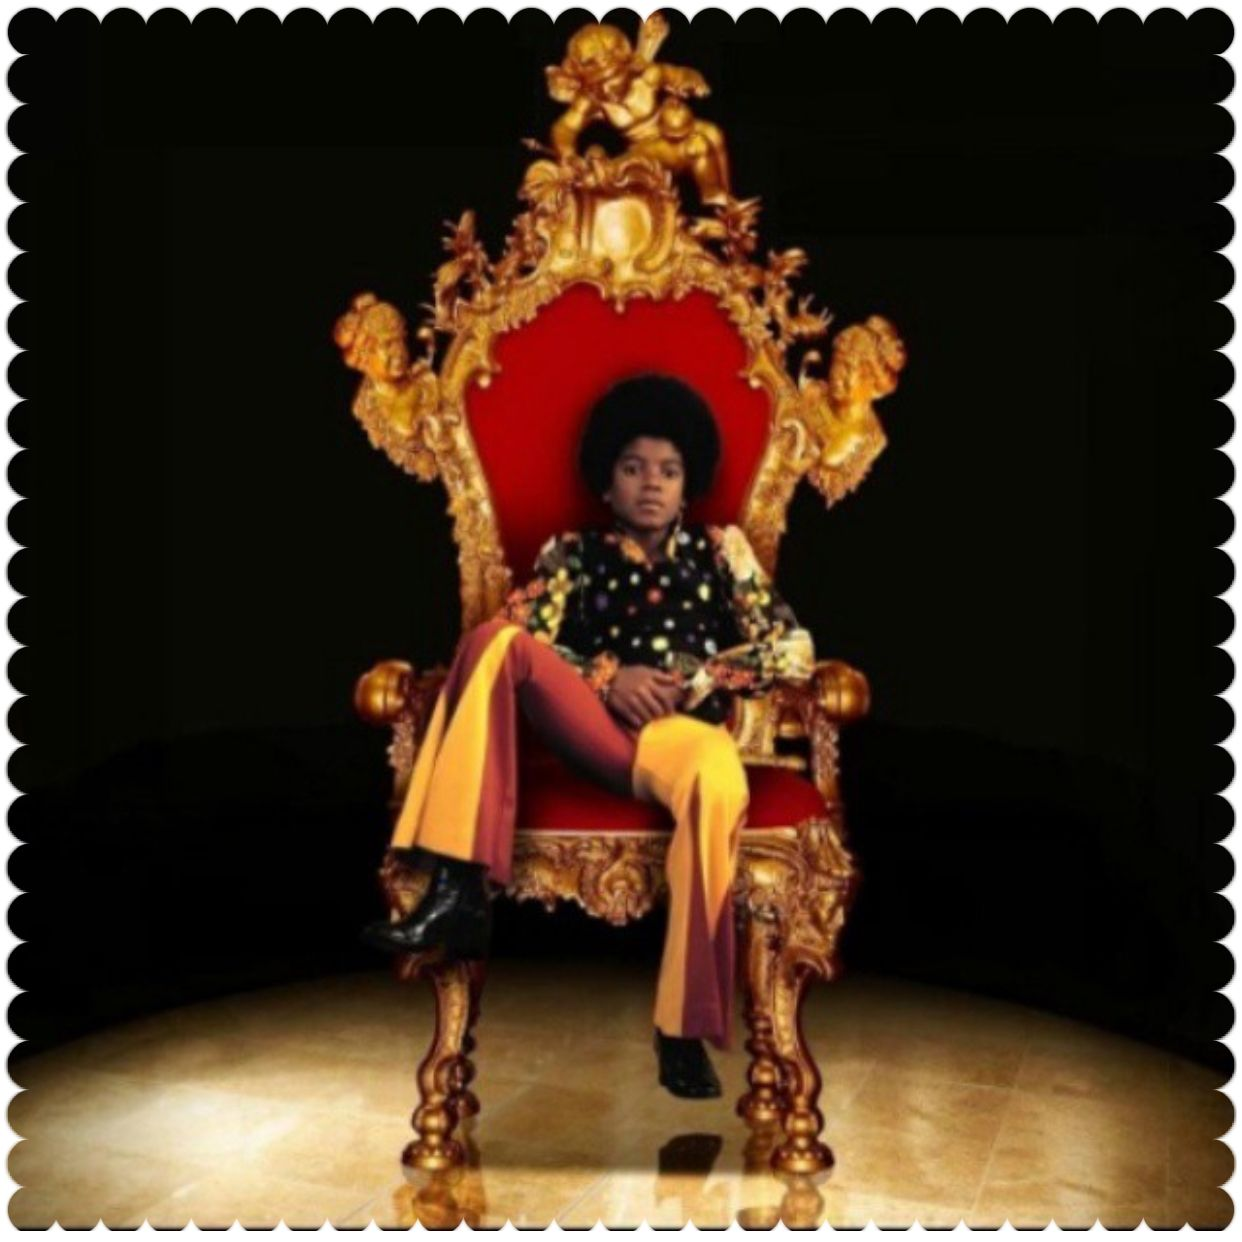 chair cover king york on 30 sec stand norms michael jackson in the dear